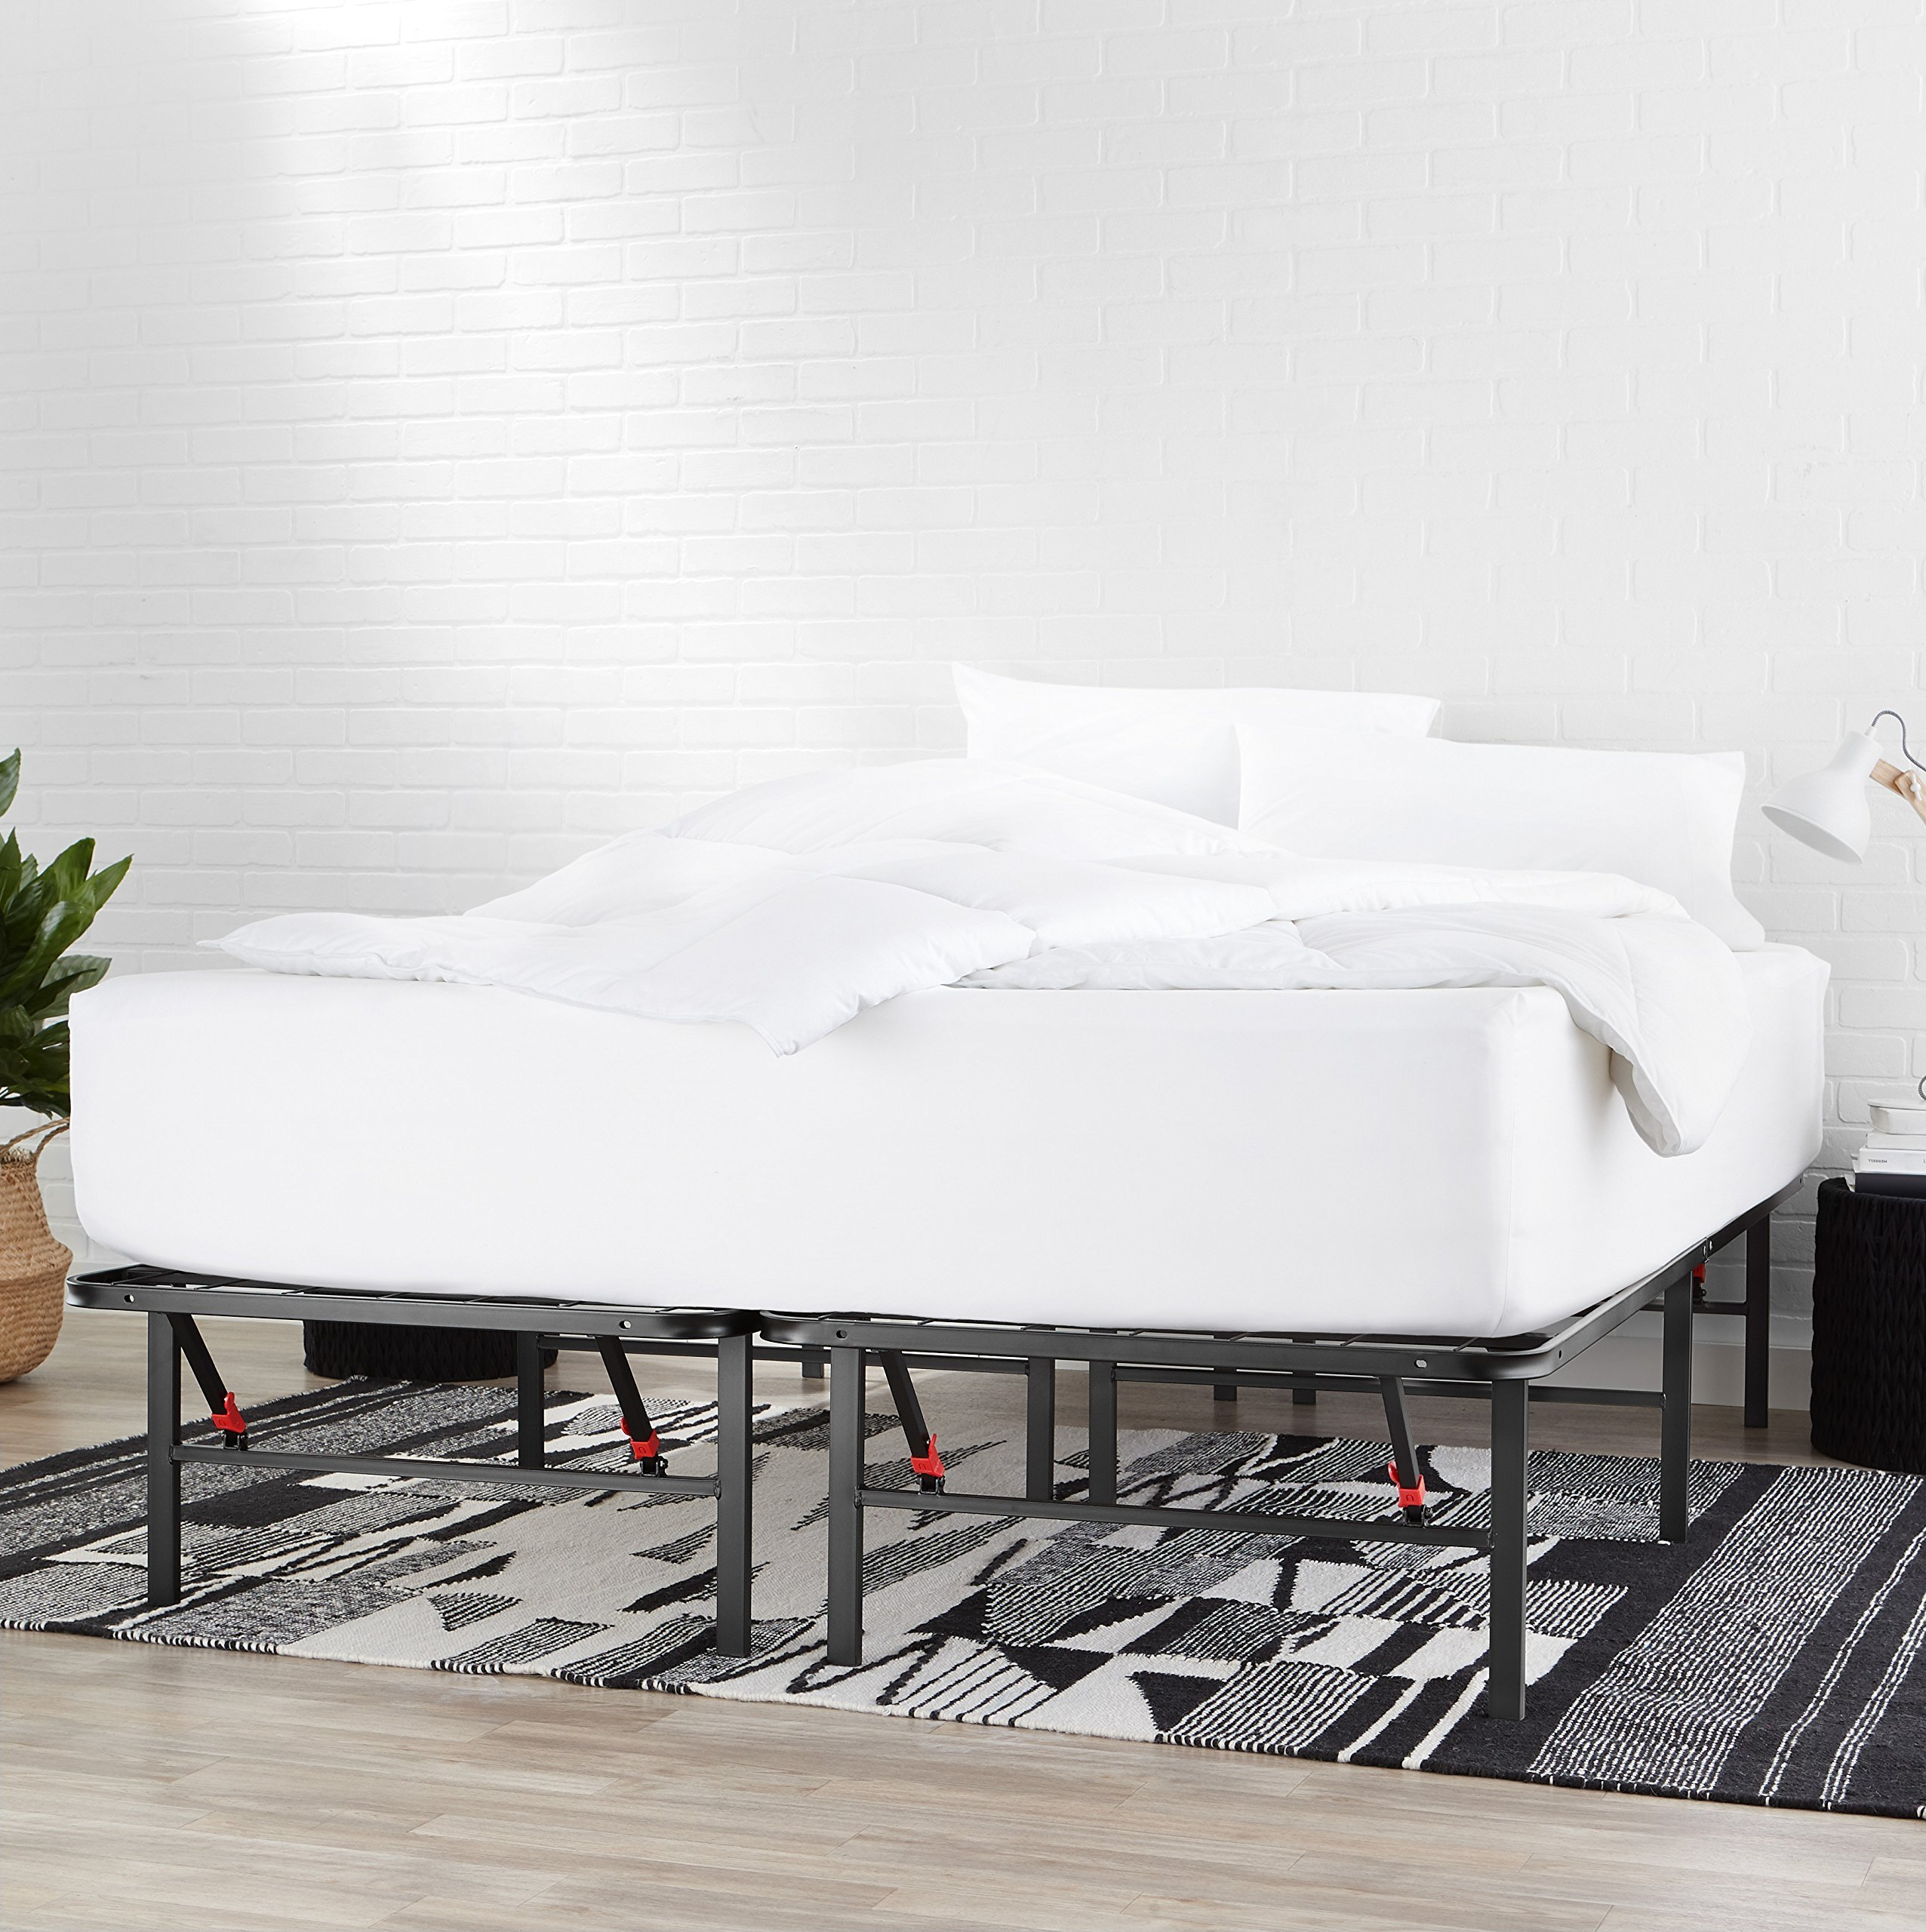 AmazonBasics Foldable Metal Platform Bed Frame for Under-Bed Storage - Tools-free Assembly, No Box Spring Needed - Full by AmazonBasics